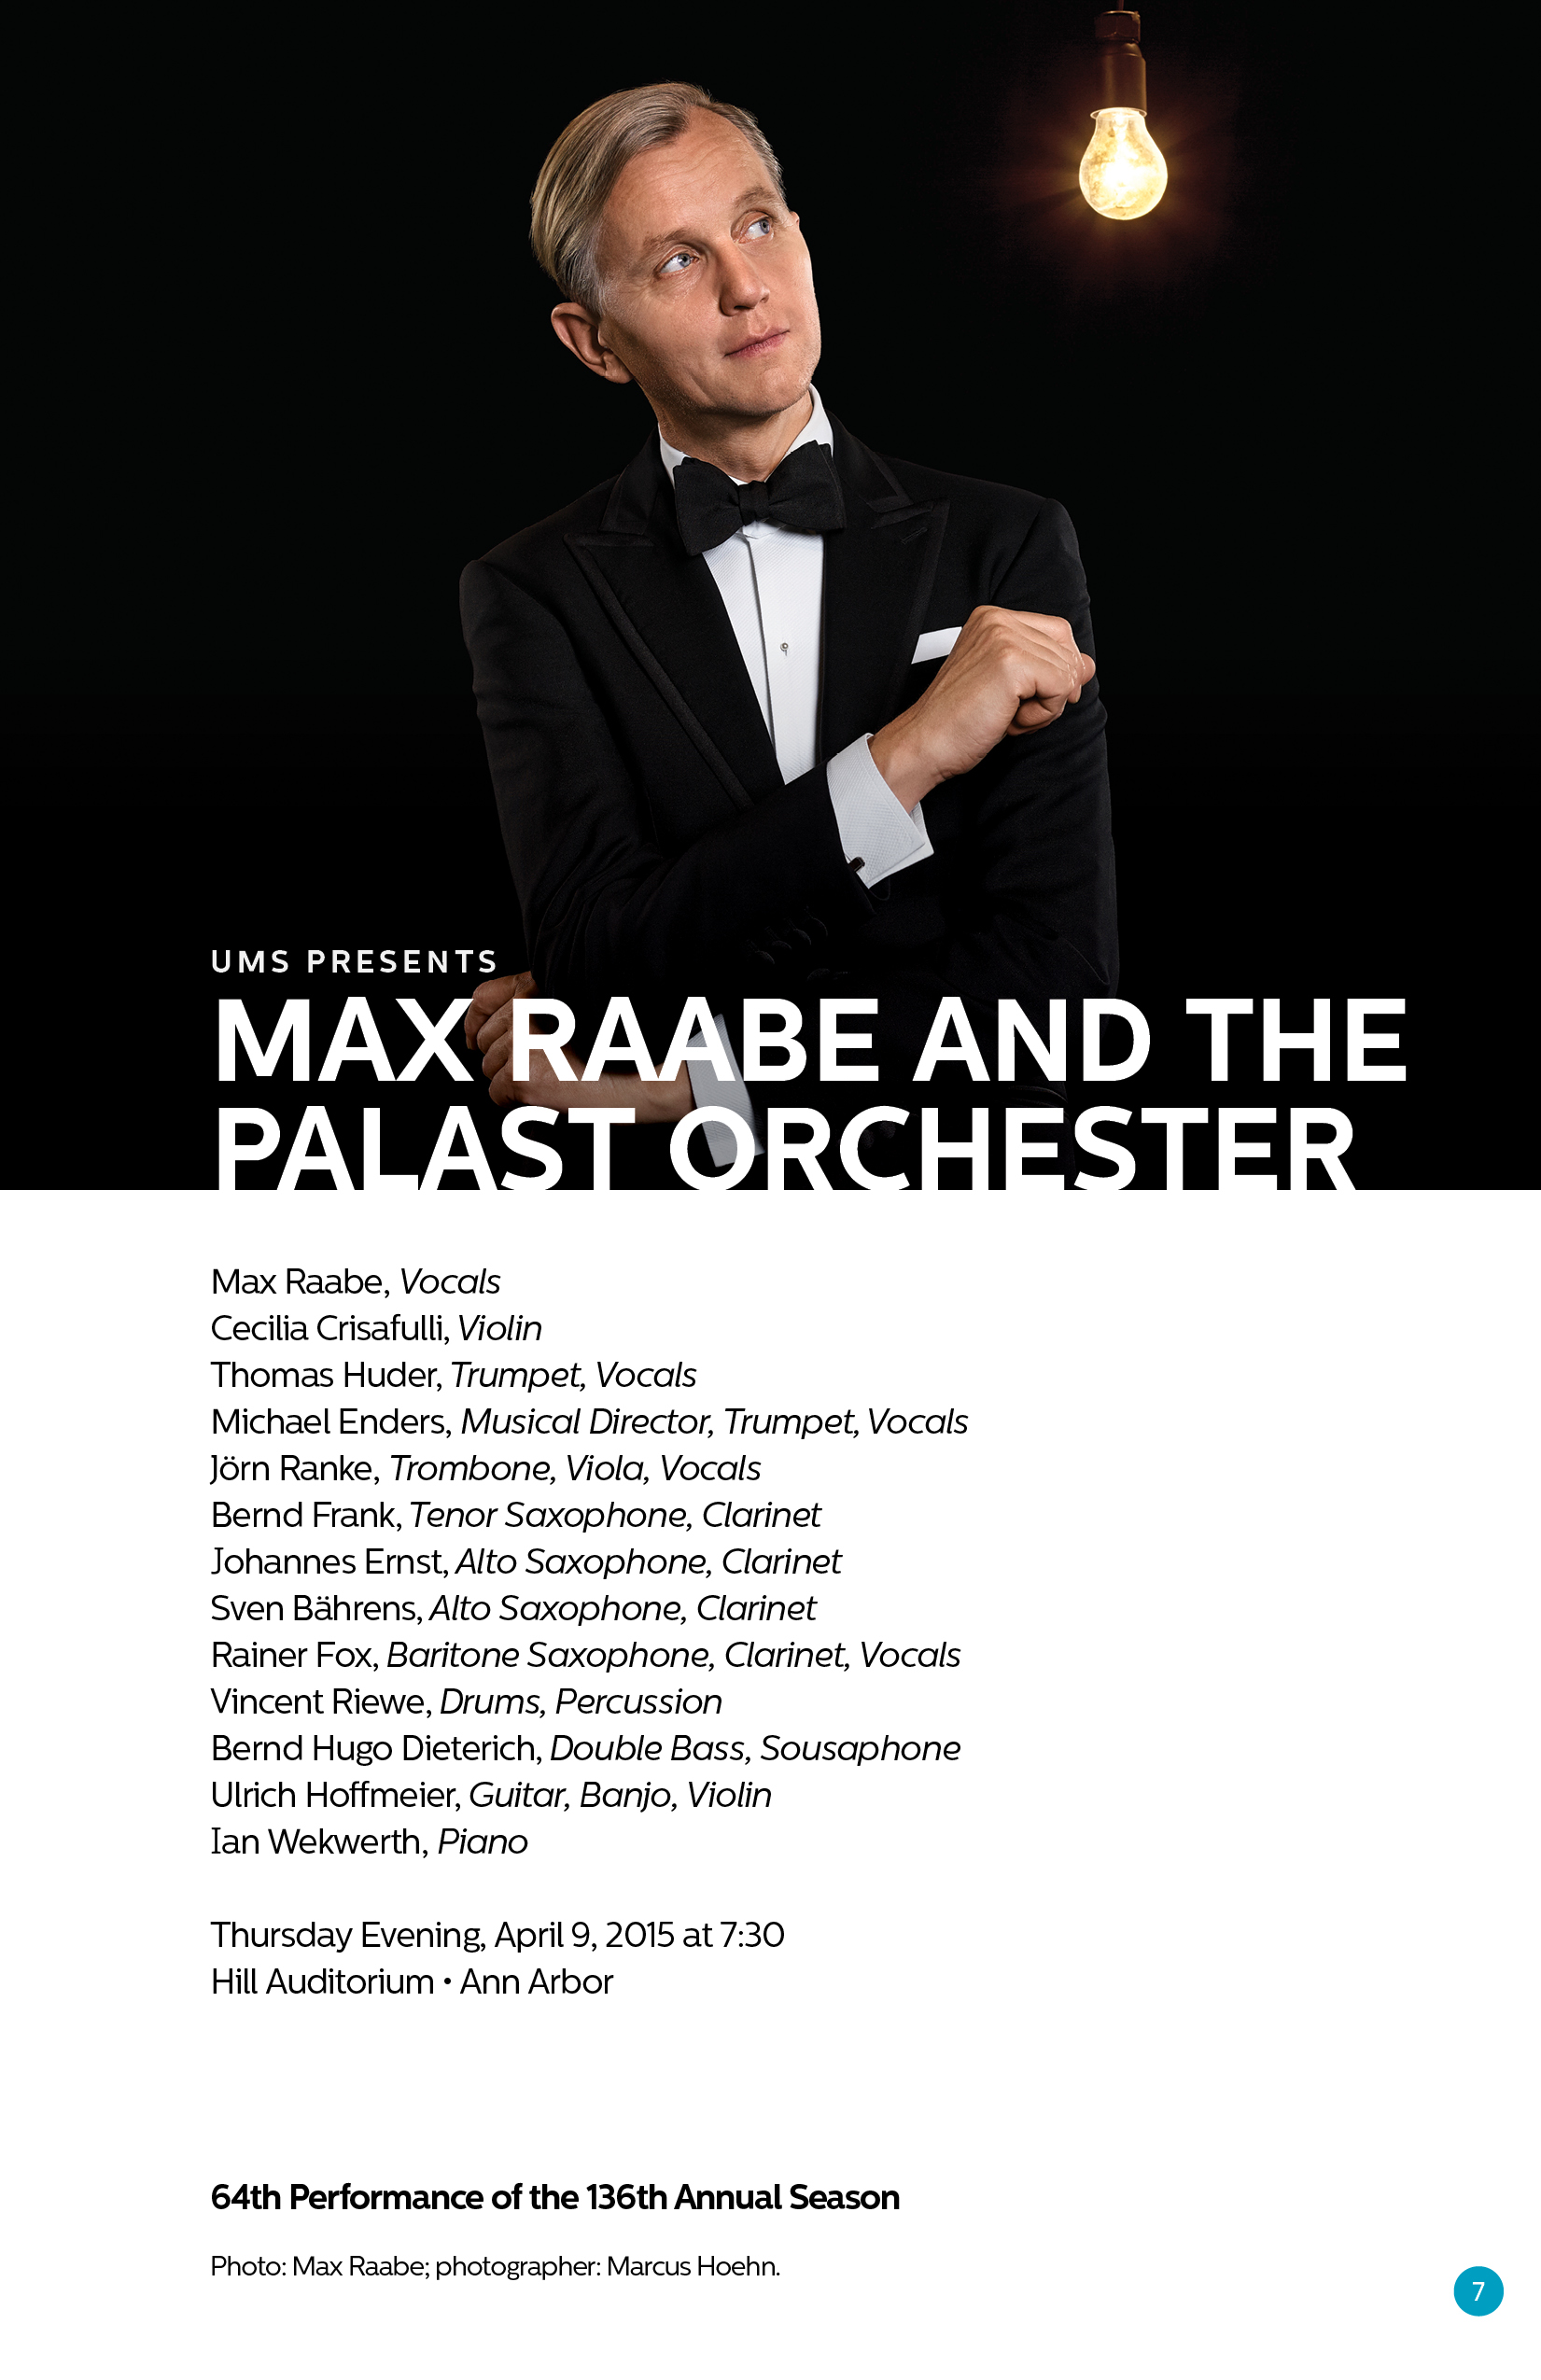 UMS Concert Program, April 4-17, 2015: Gilberto Gil; Max Raabe & Palast Orchester; Chick Corea & Herbie Hancock; Oliver Mtukudzi image